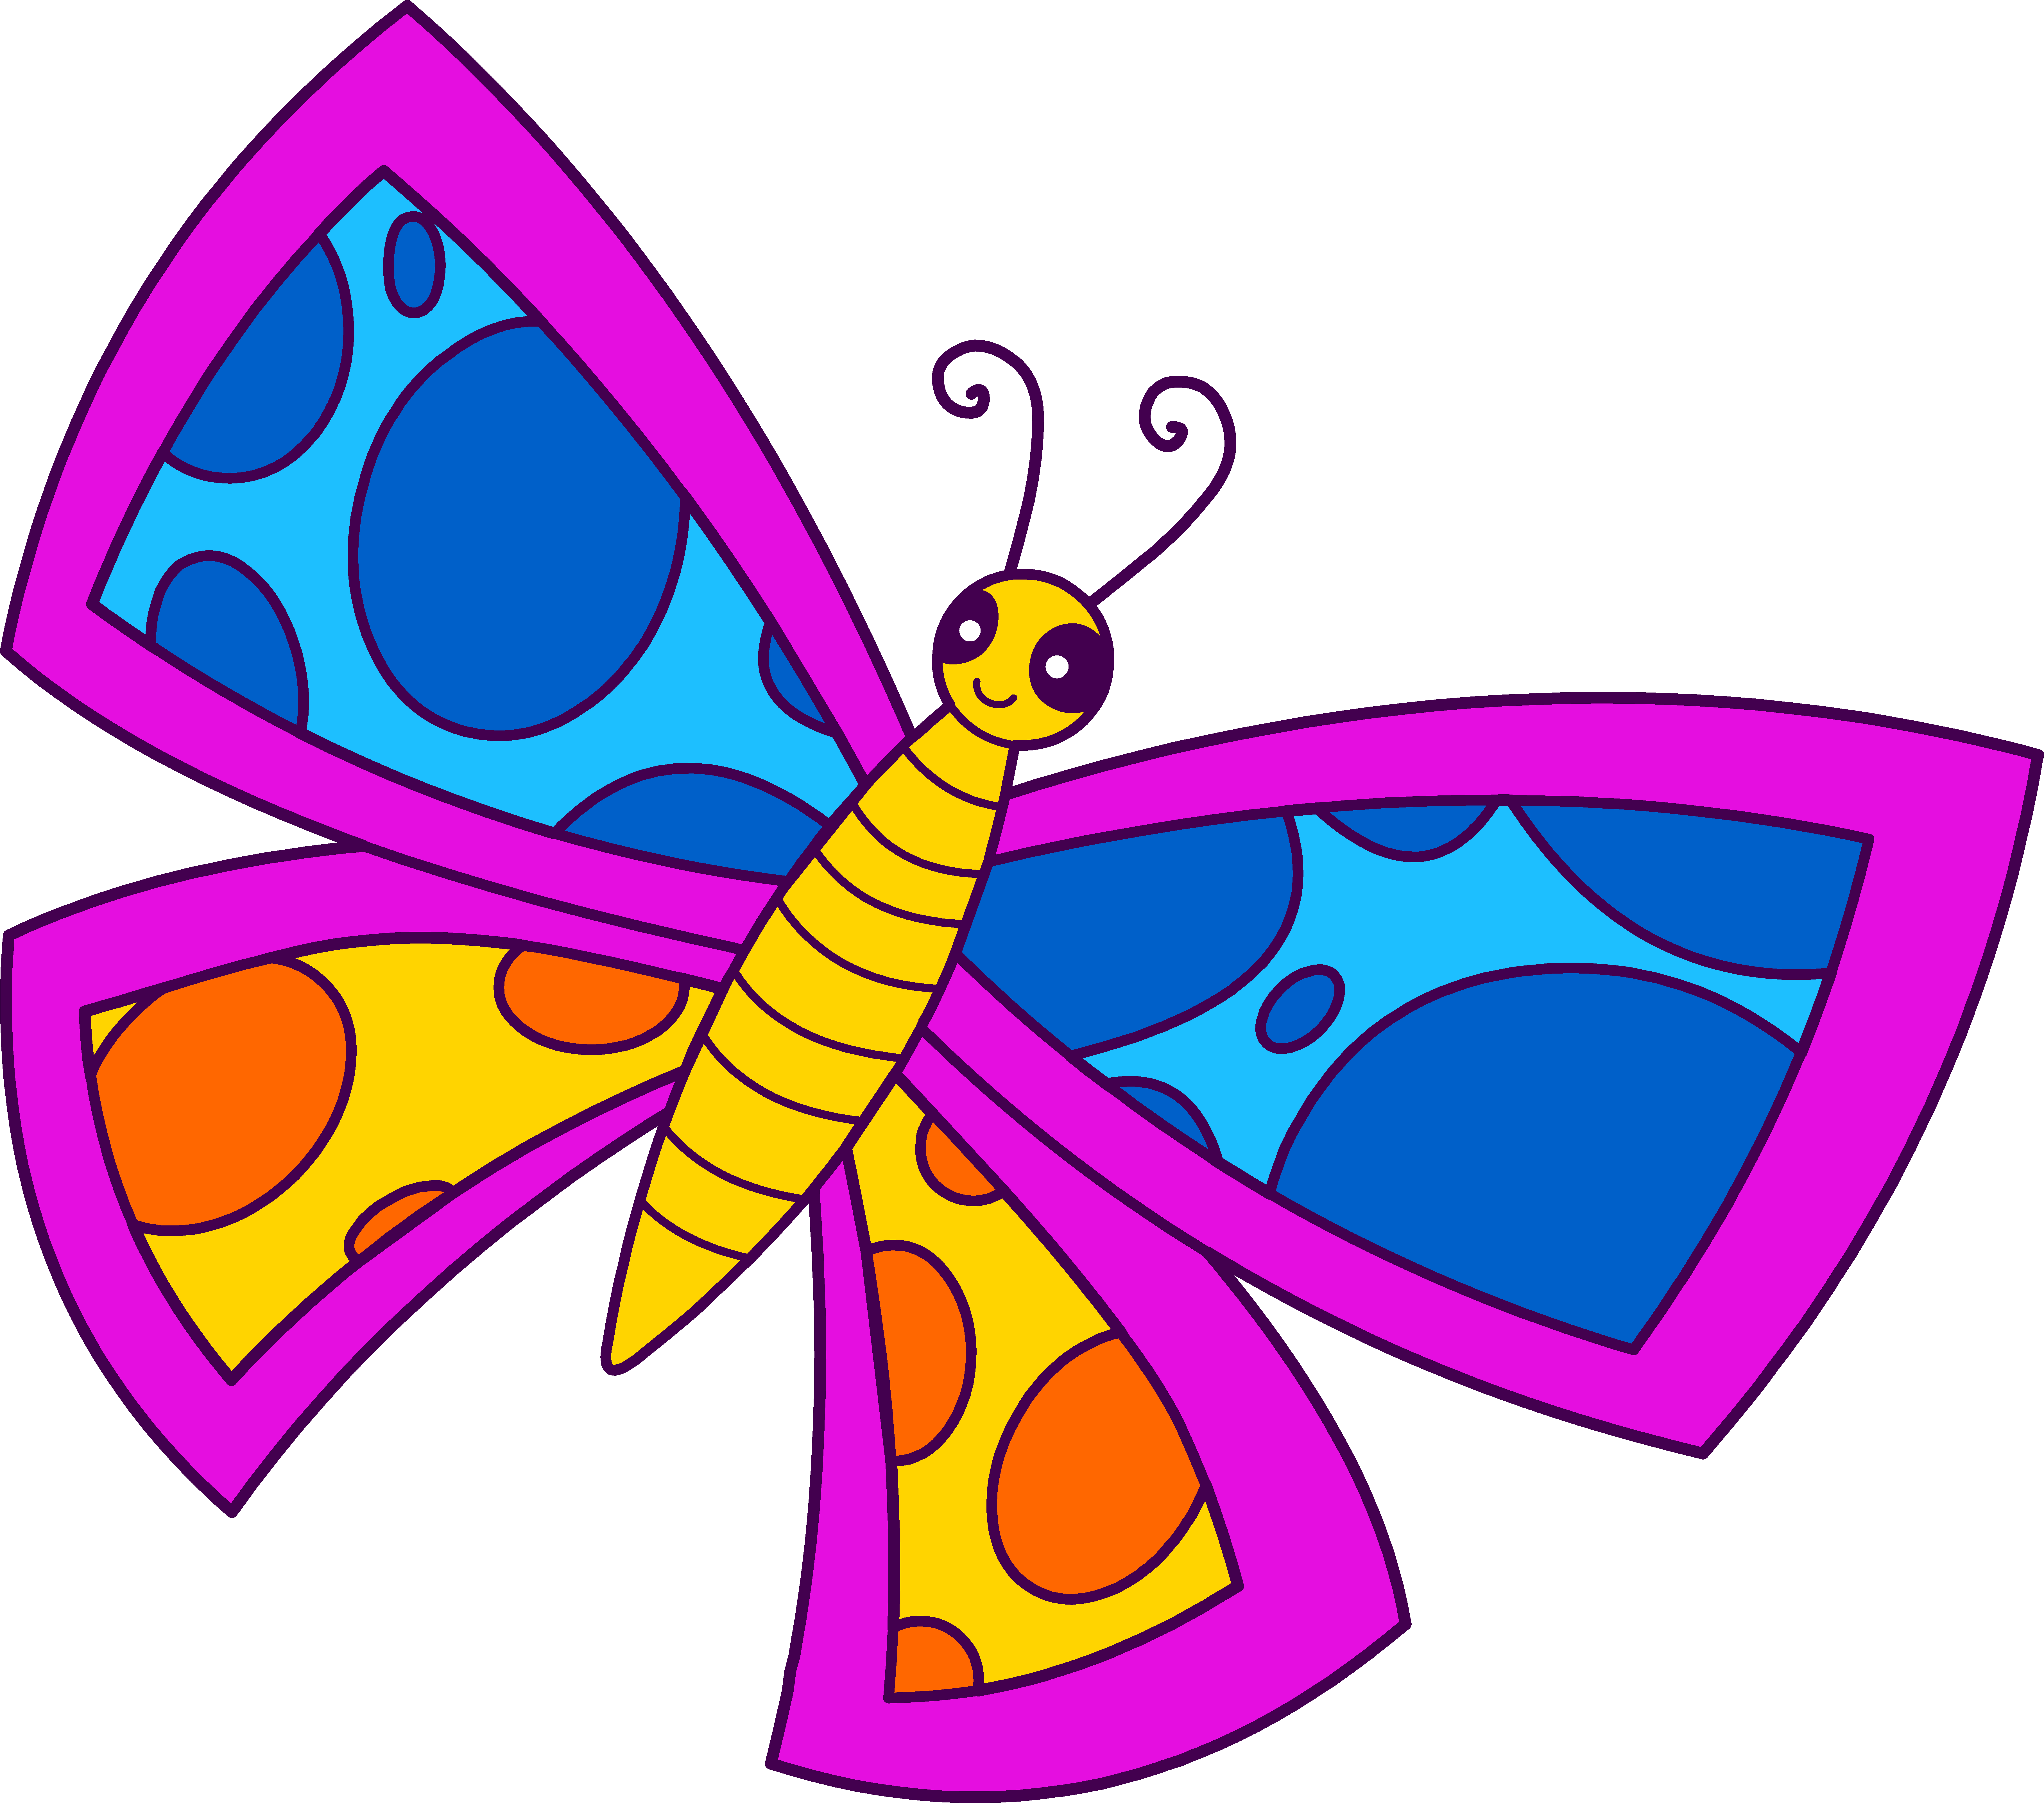 free clip art clipart panda free clipart images rh clipartpanda com clipart of butterfly with eyes clipart pictures of butterflies